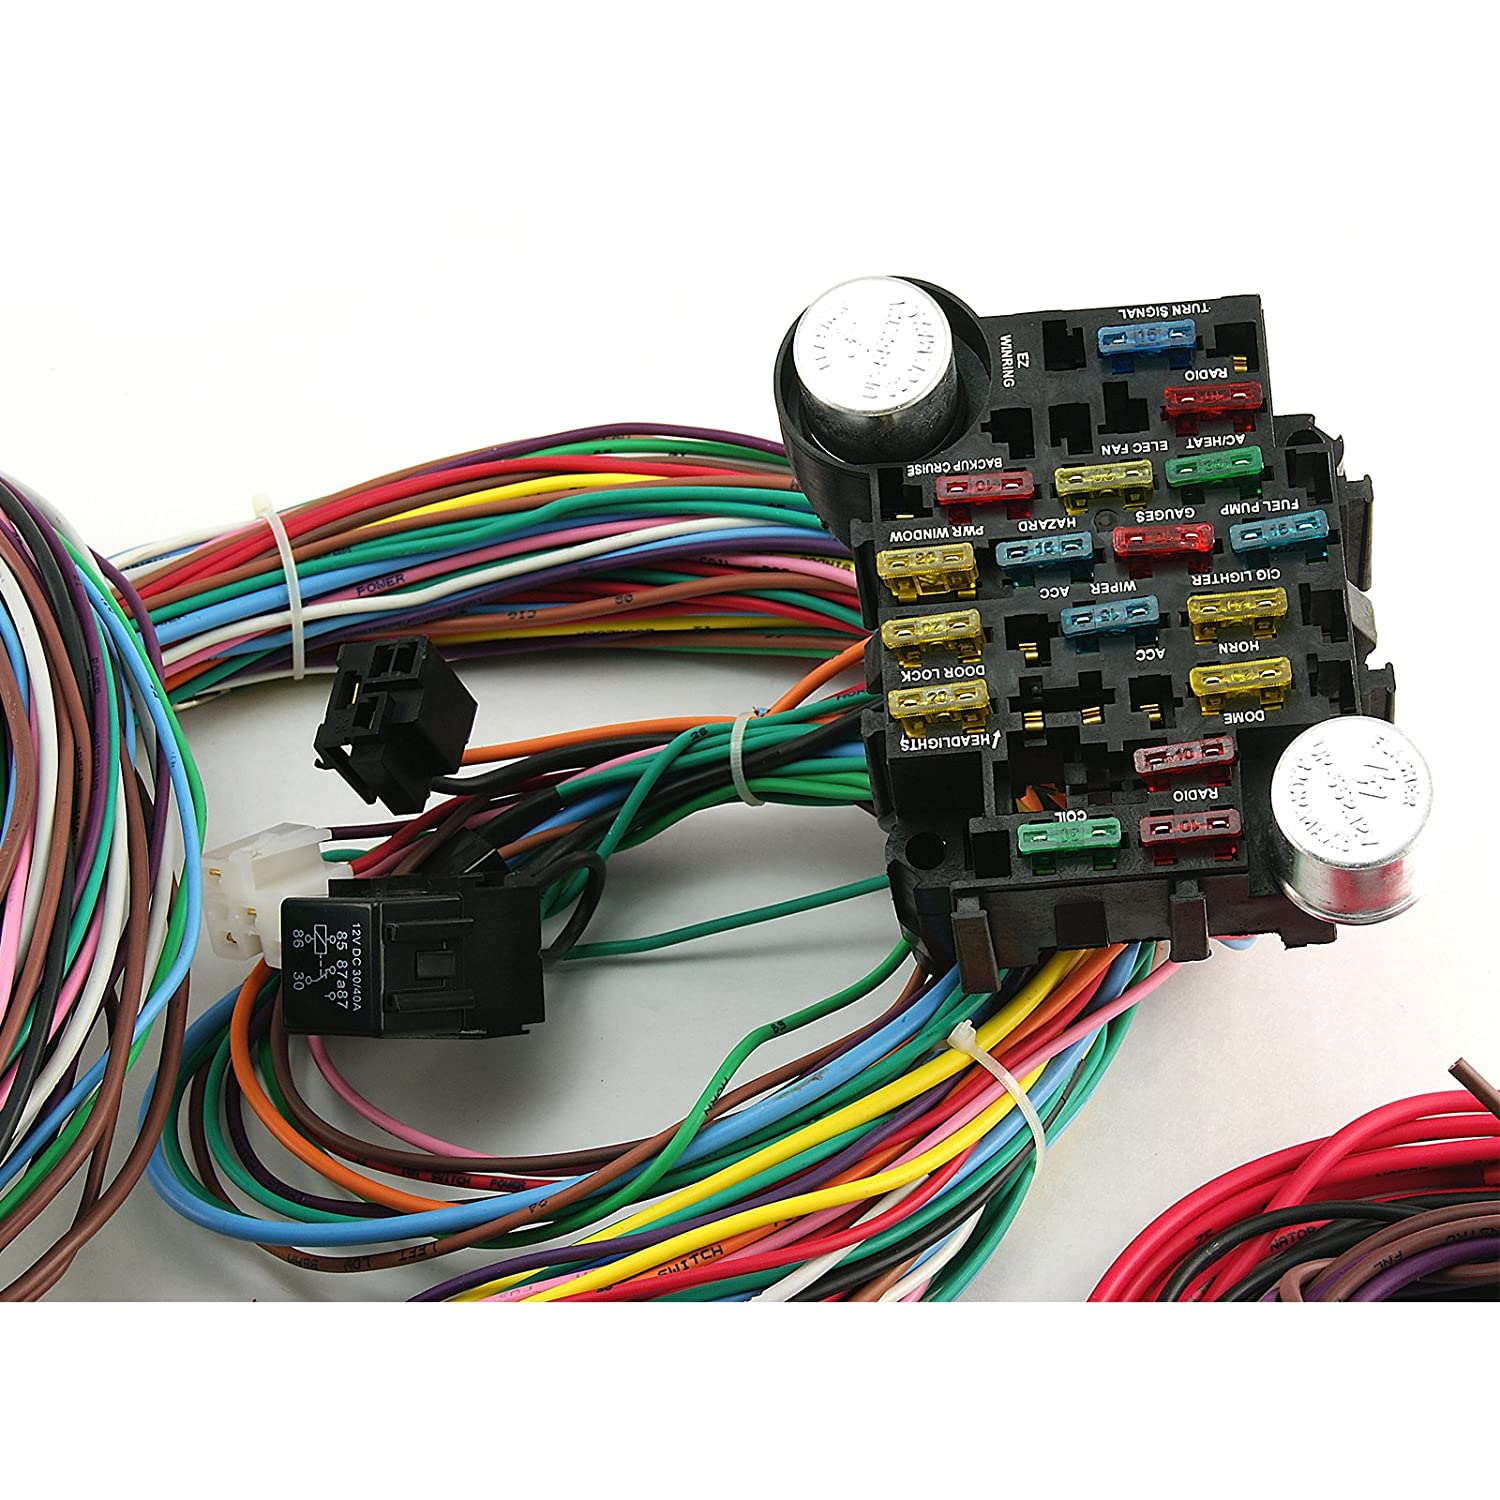 81pmBpTXibL._SL1500_ amazon com speedmaster pce368 1002 wiring harnesses automotive 22 circuit wiring harness at bayanpartner.co